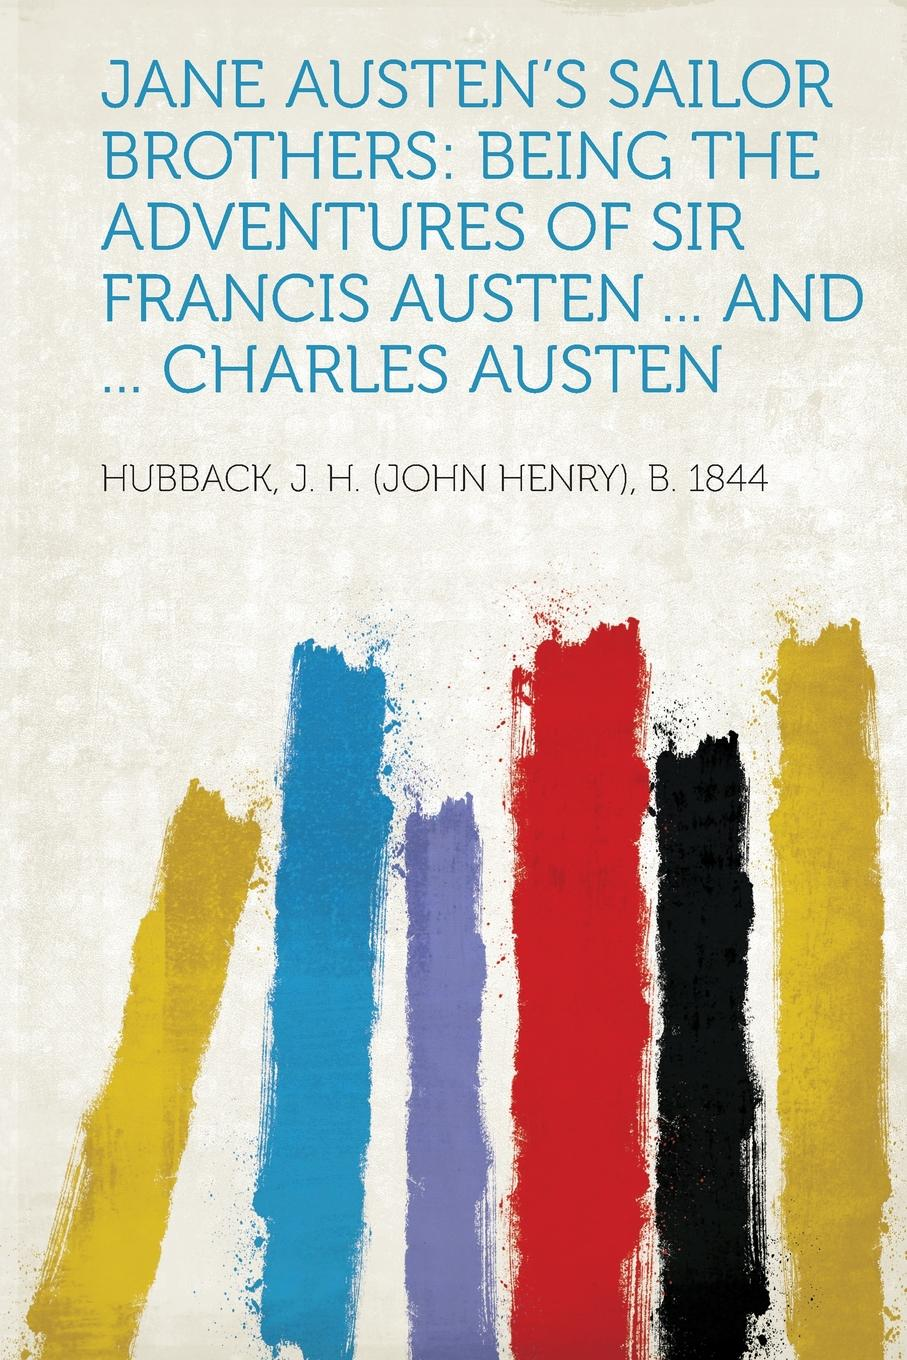 Hubback J. H. (John Henry) b. 1844 Jane Austen.s Sailor Brothers. Being the Adventures of Sir Francis Austen ... and ... Charles Austen